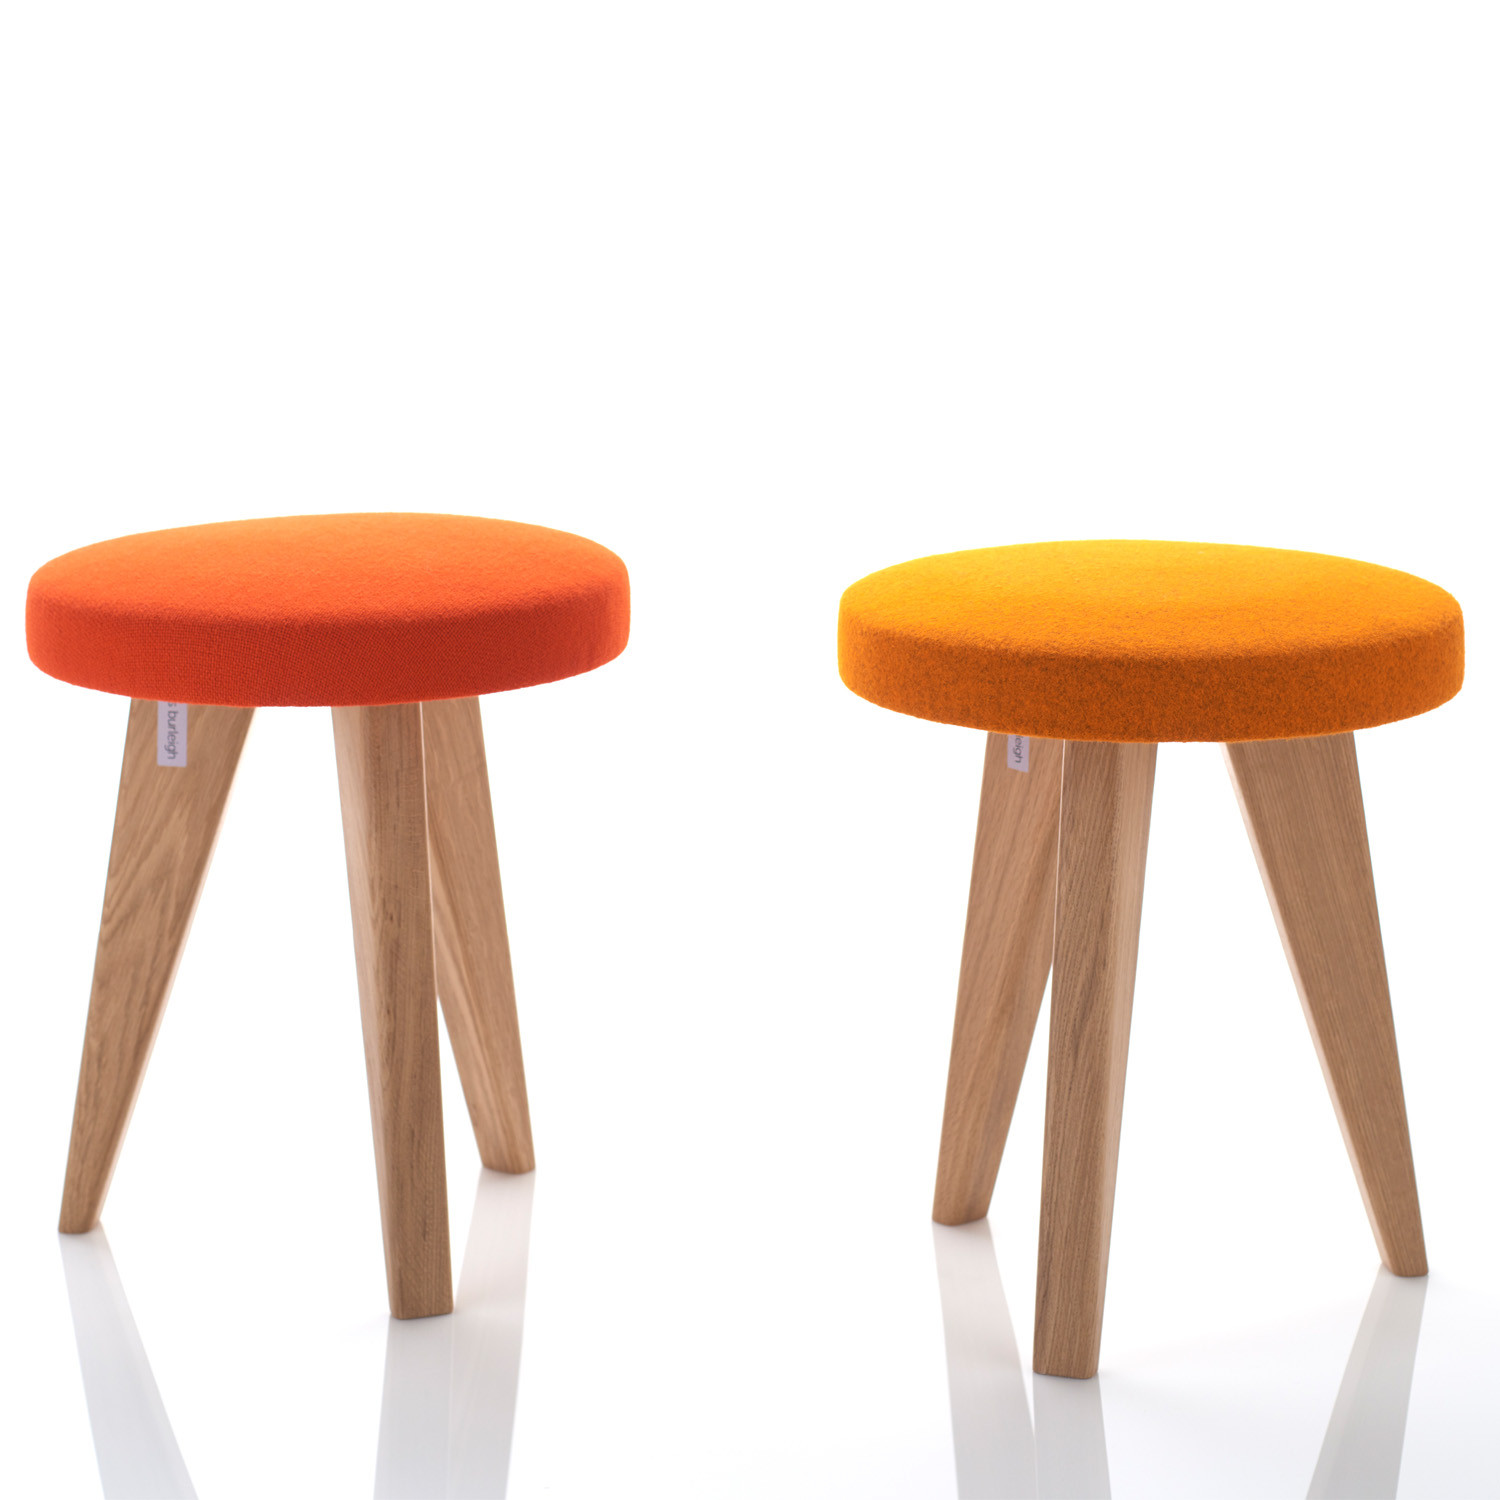 Shug Designer Stools by James Burleigh